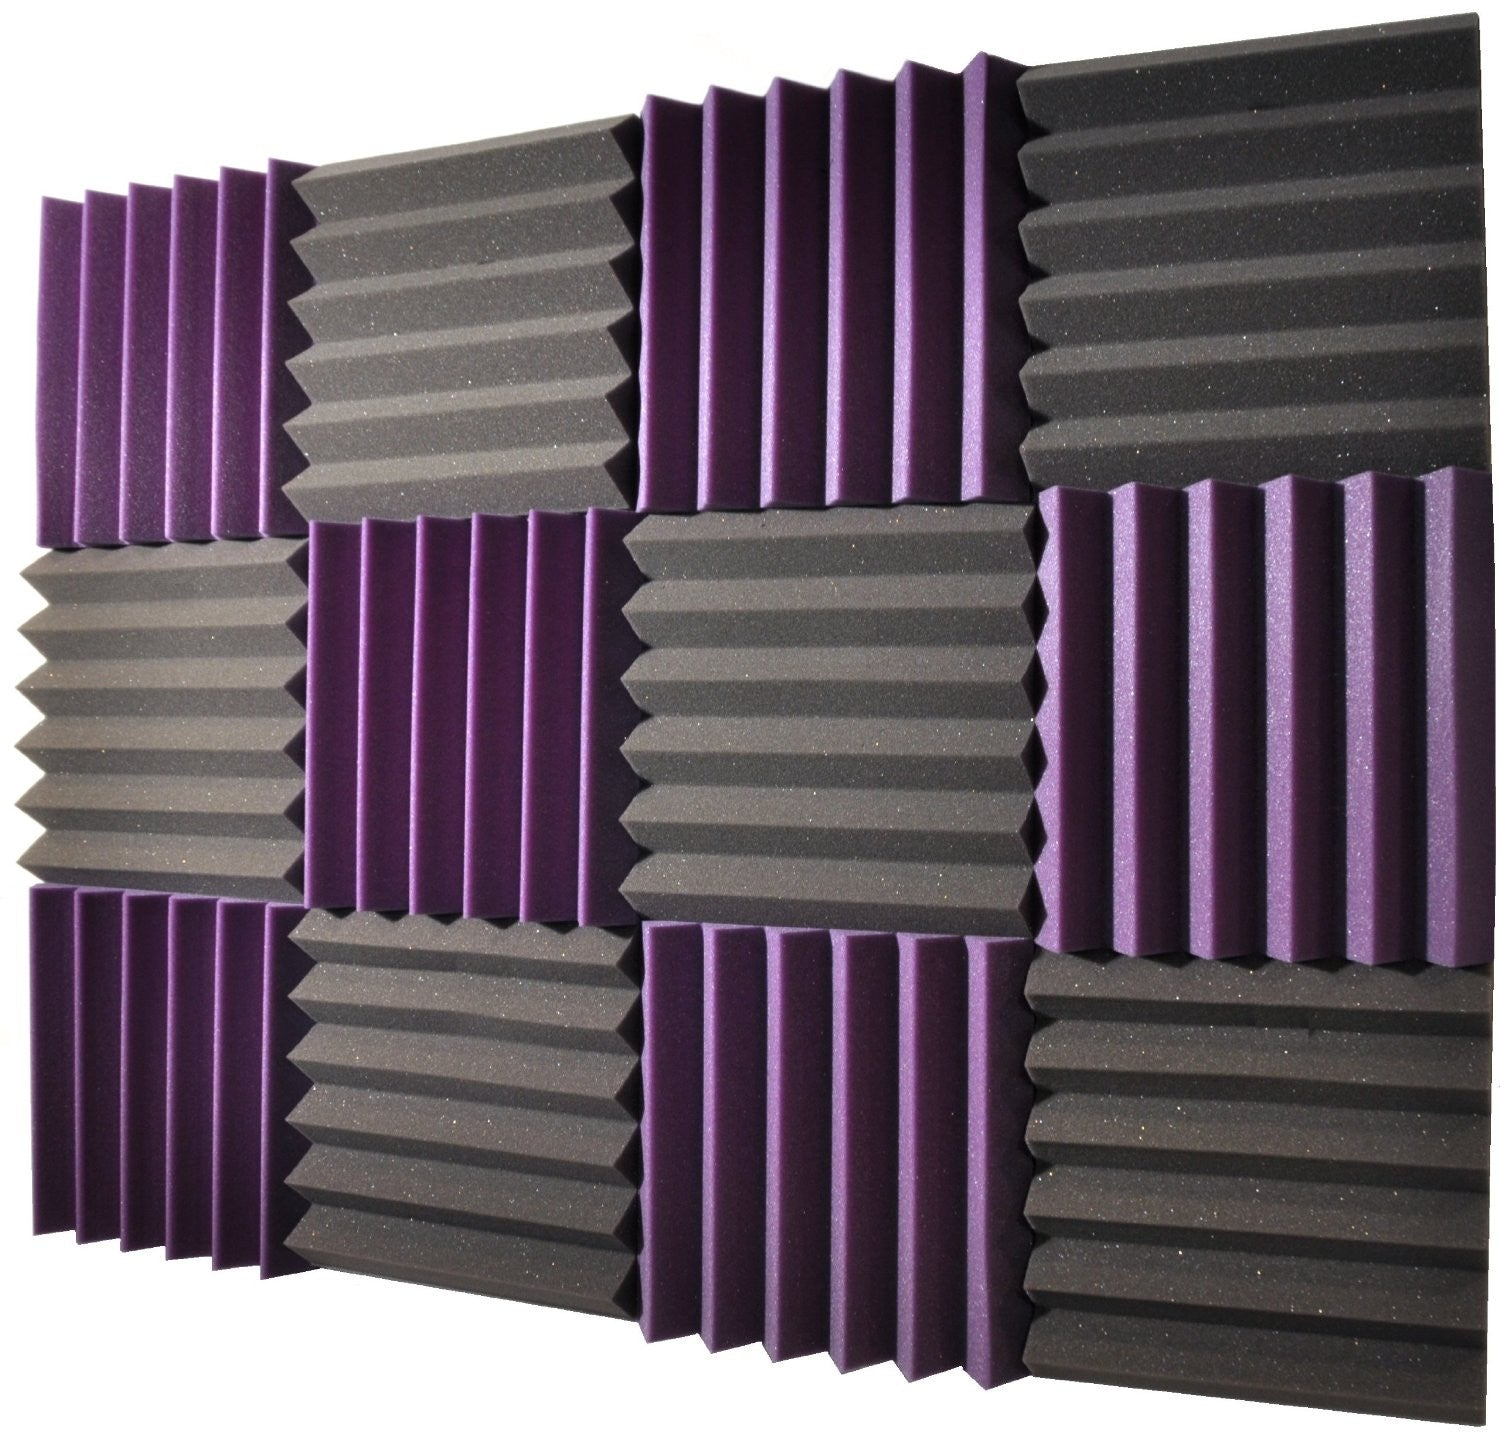 Soundproofing Foam Acoustic Studio Room Tiles